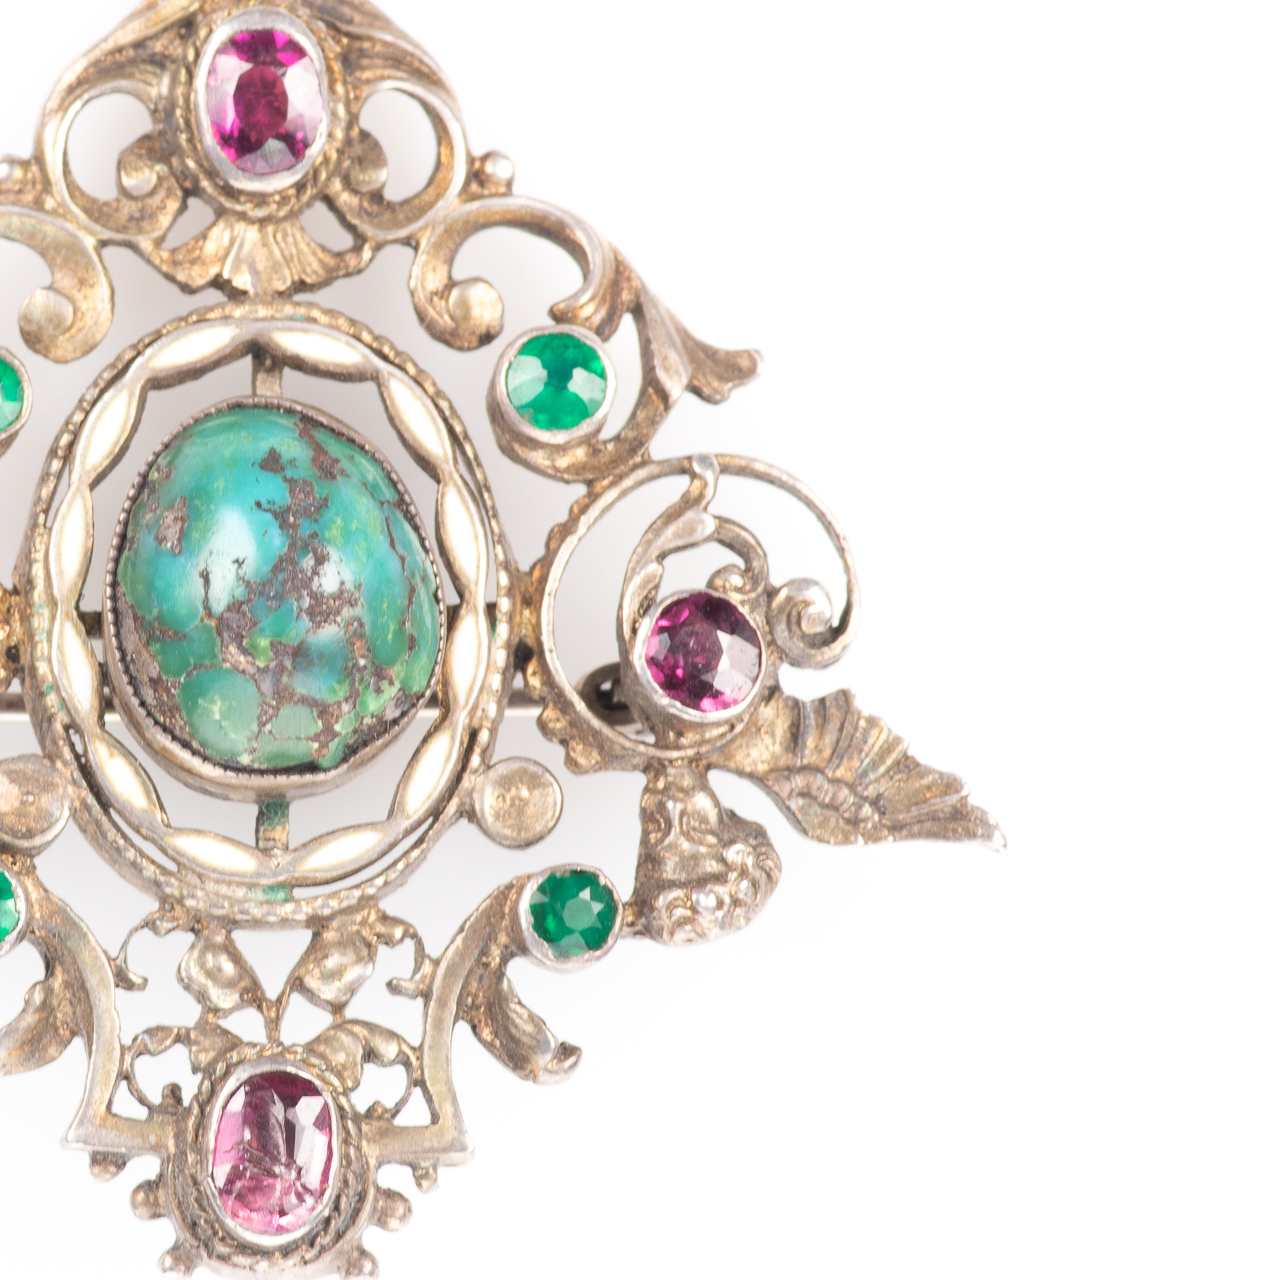 Austro-Hungarian 935 Silver Emerald, Amethyst & Turquoise Brooch - Image 2 of 6